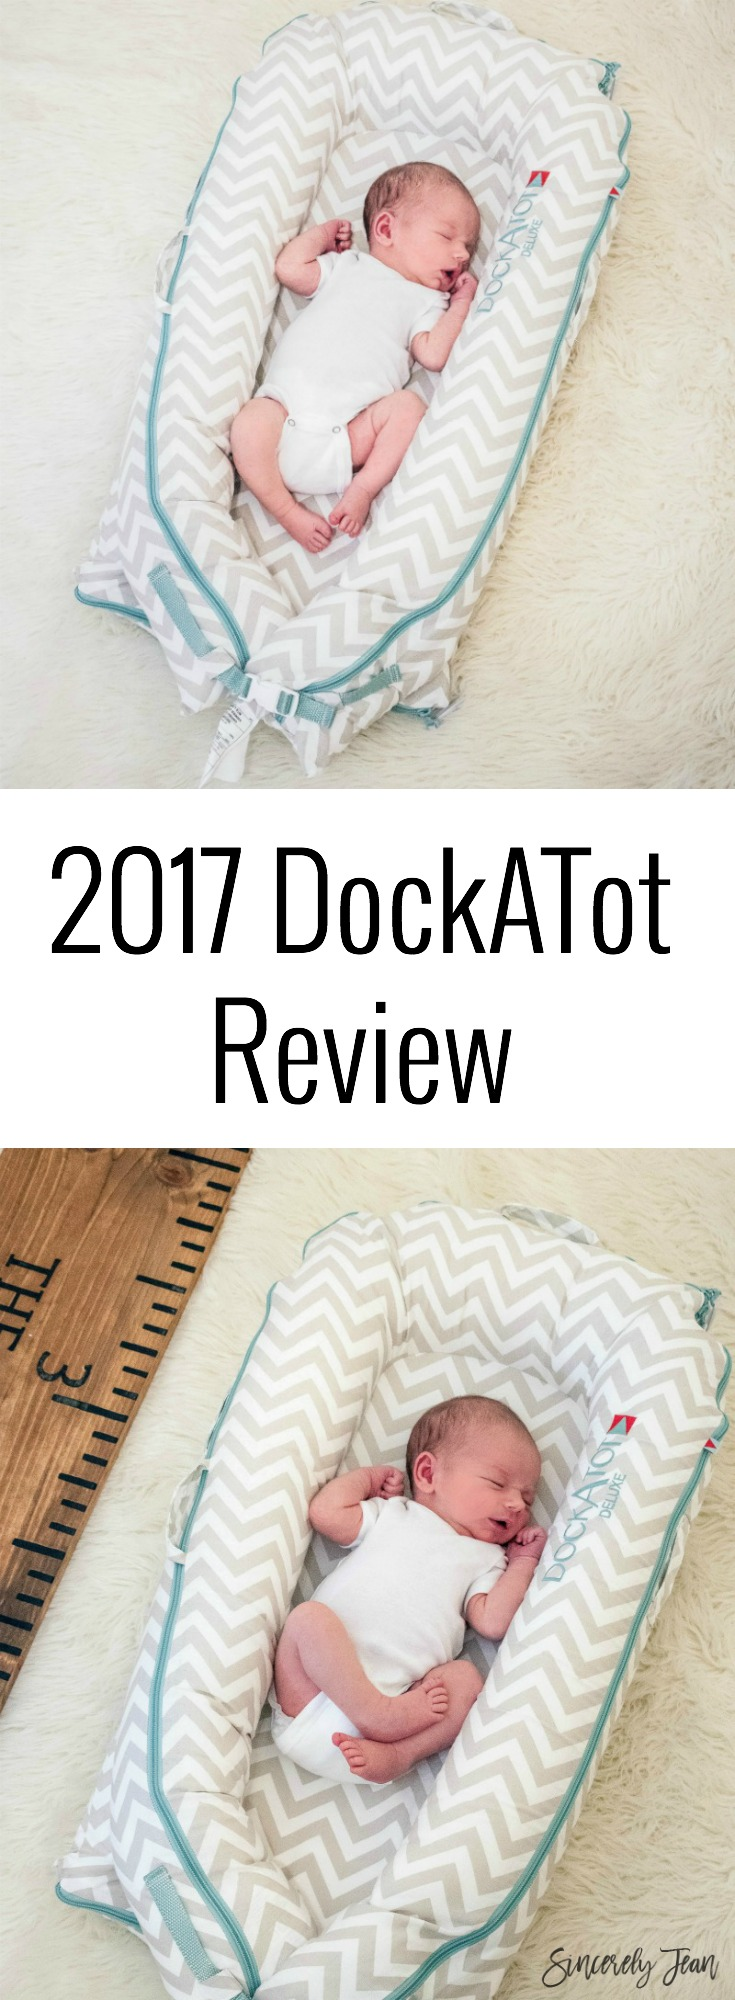 Dockatot baby products 2017 review by SincerelyJean.com